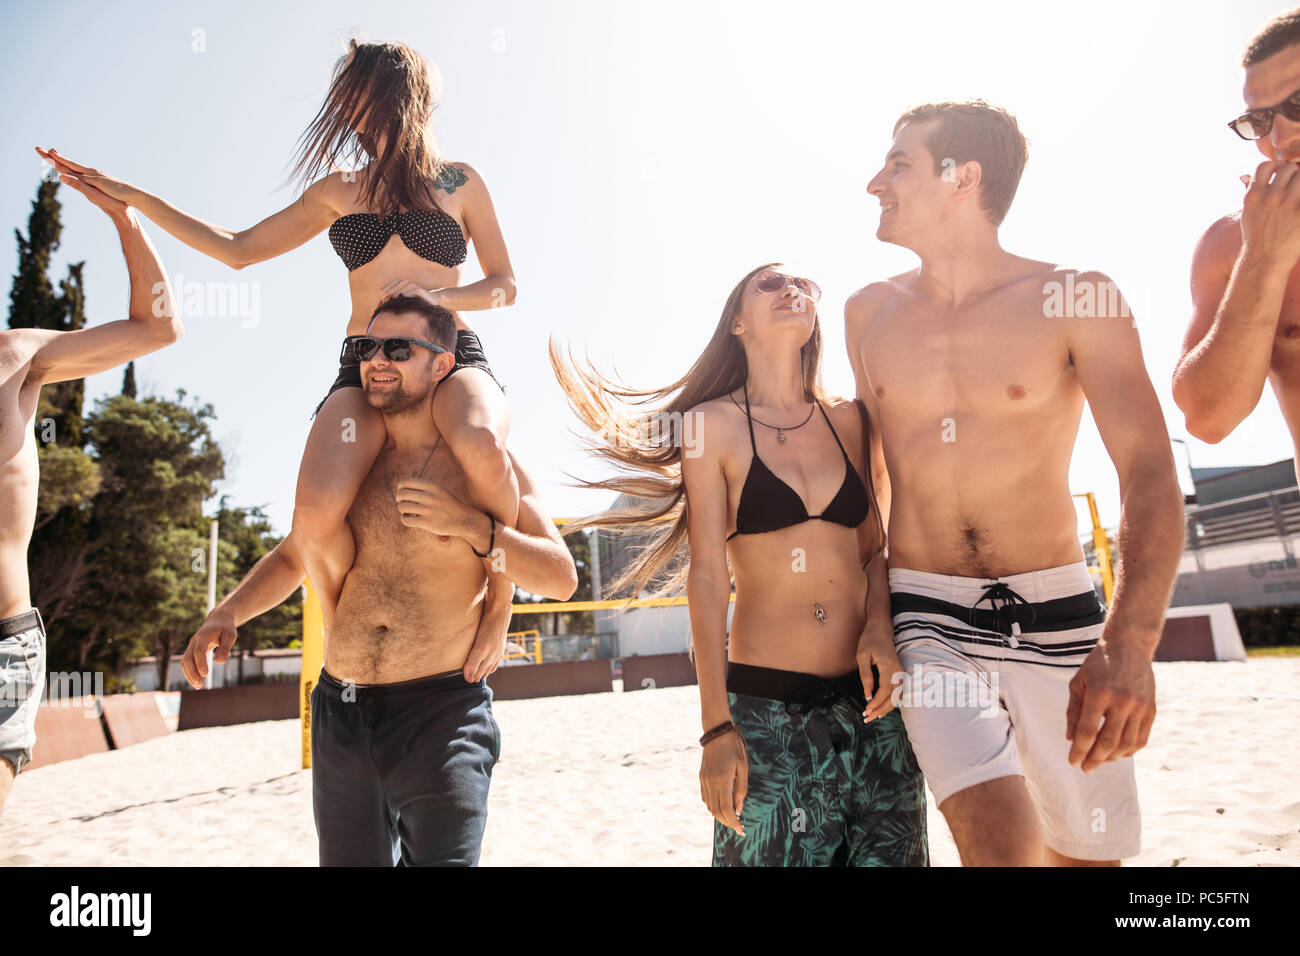 European adult people, cheerful guys and girl, spending their leisure time on hotel sandy volleyball field, having fun, living healthy active lifestyl - Stock Image